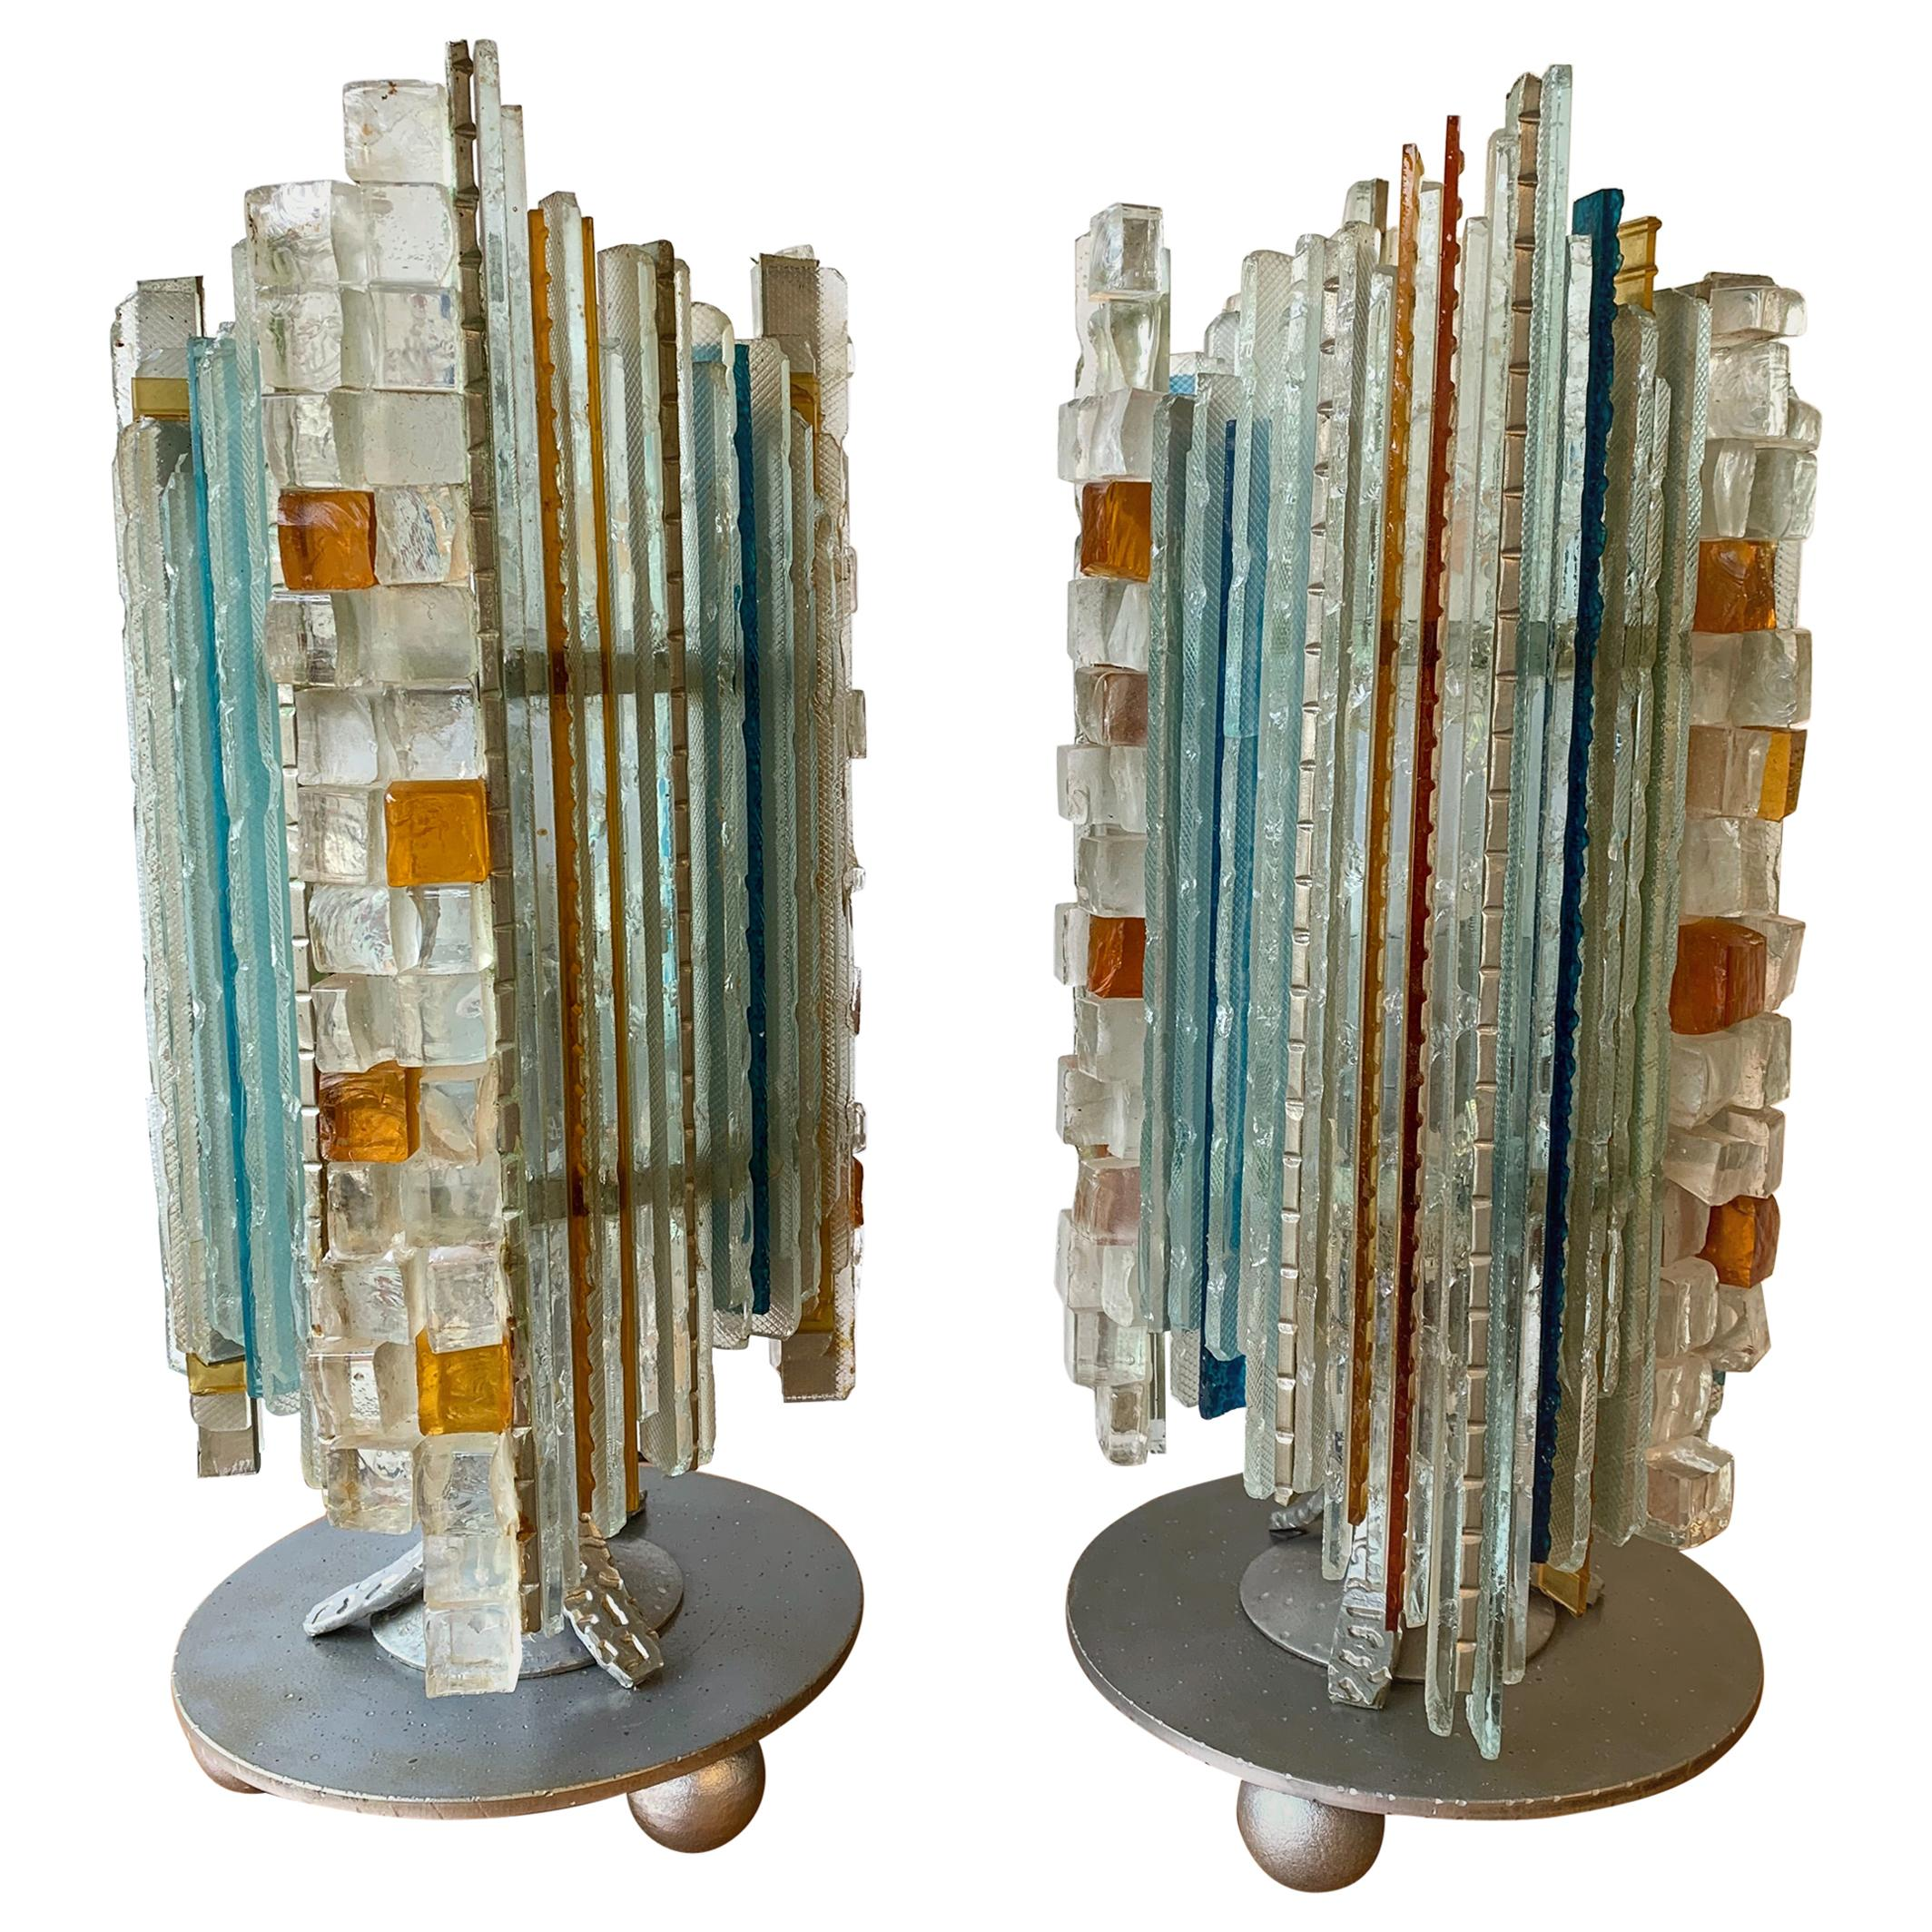 Pair of Lamps Glass and Wrought Iron by Biancardi & Jordan Arte, Italy, 1970s